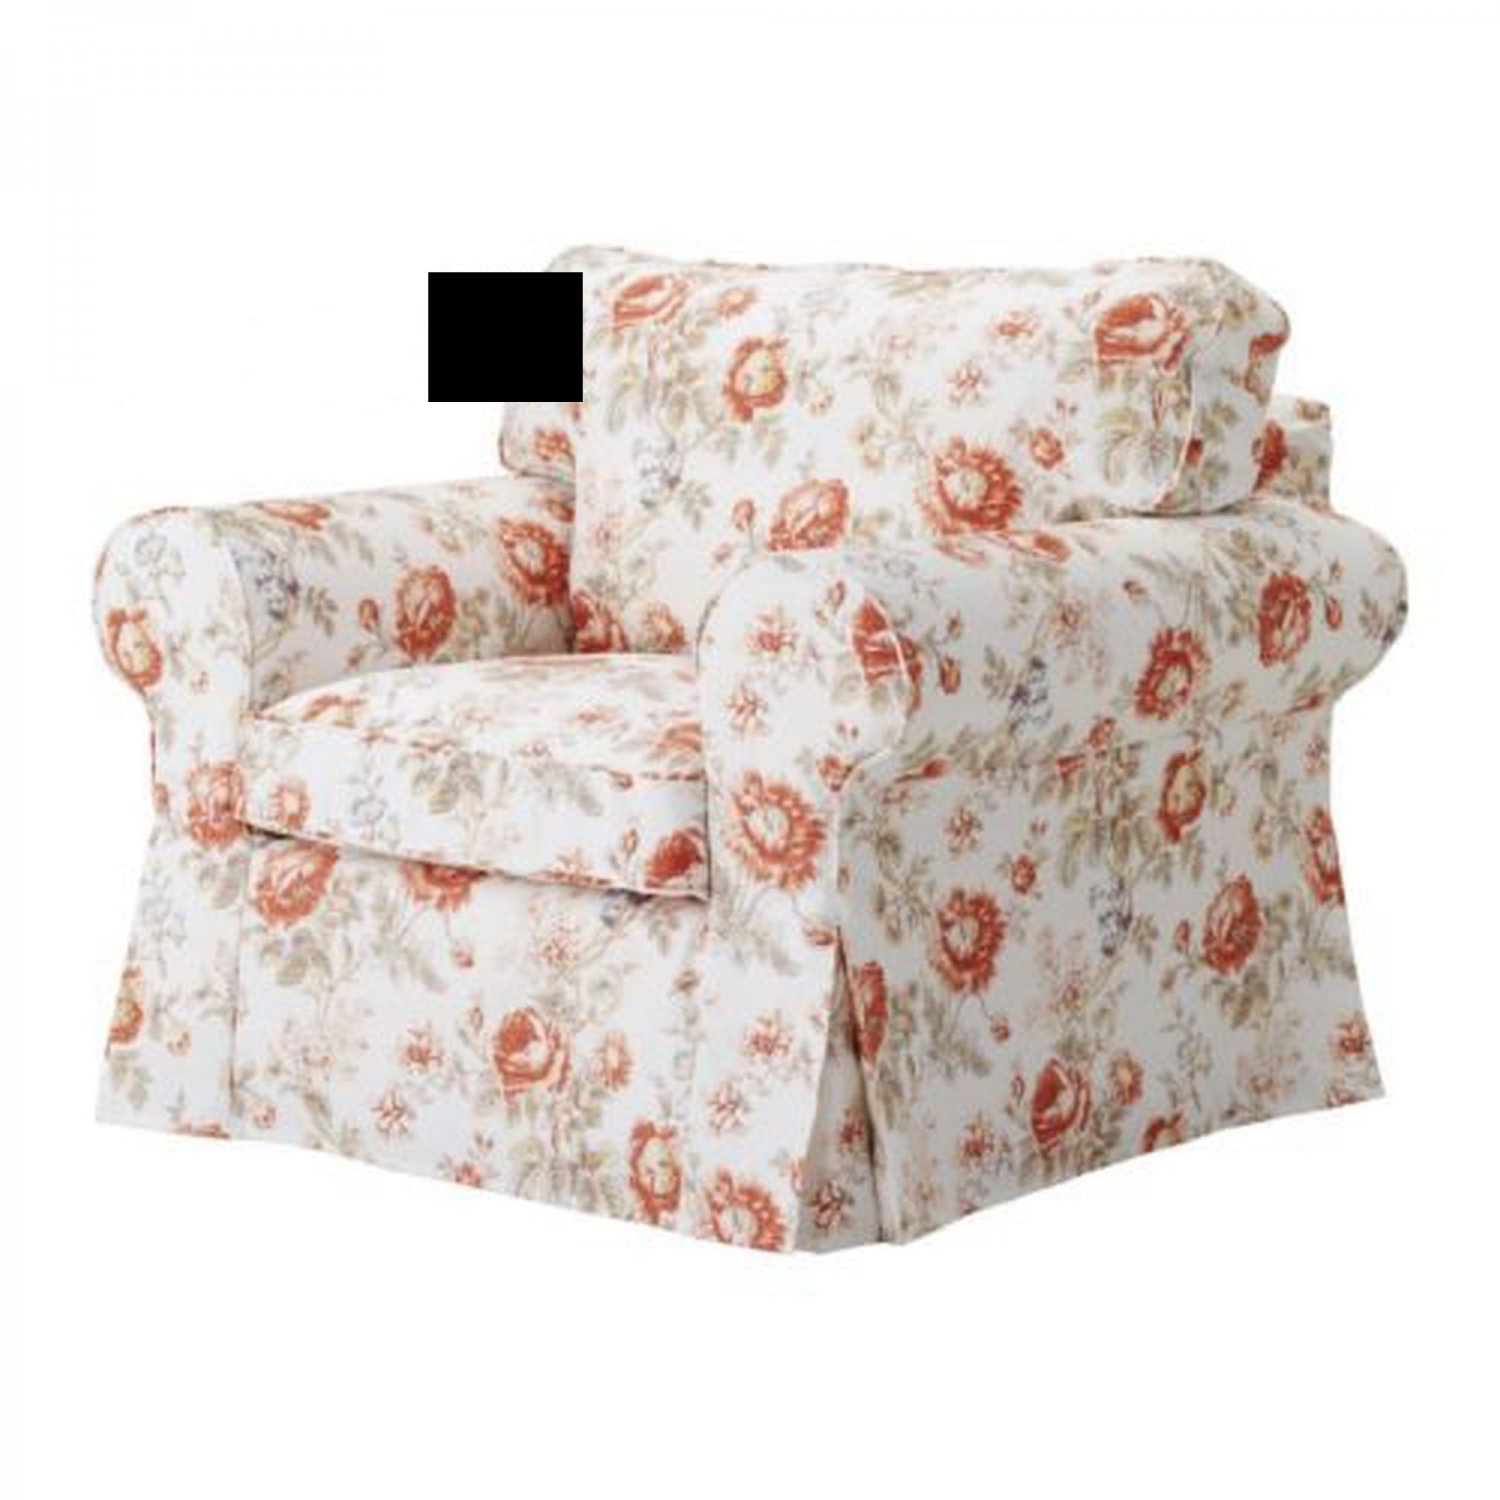 ikea ektorp armchair slipcover cover byvik multi floral rose peony. Black Bedroom Furniture Sets. Home Design Ideas